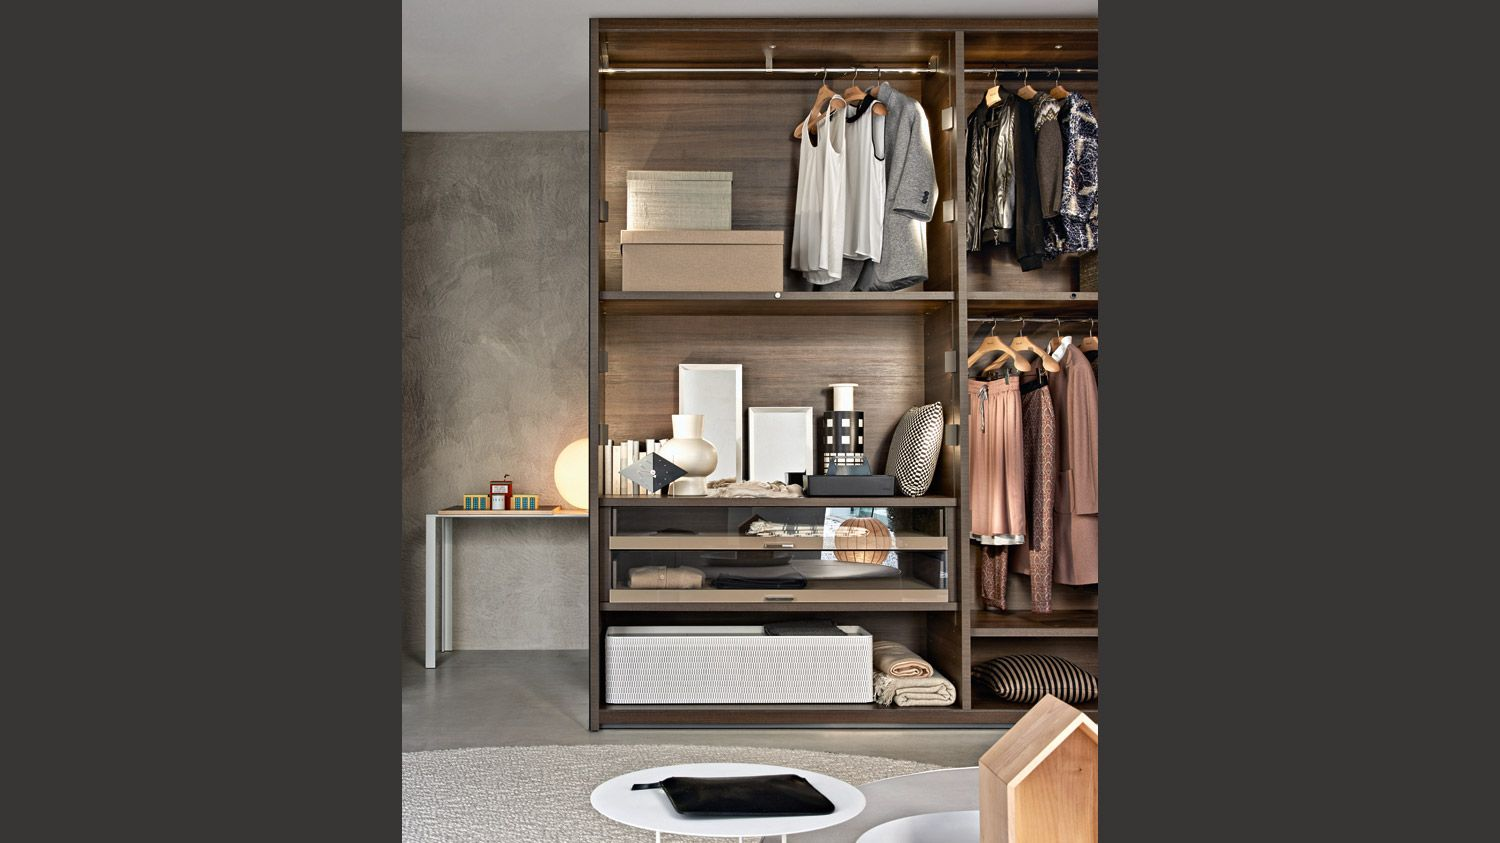 Wackenhut Schlafzimmer ~ Gliss quick walk in closets molteni & c walk ins closets